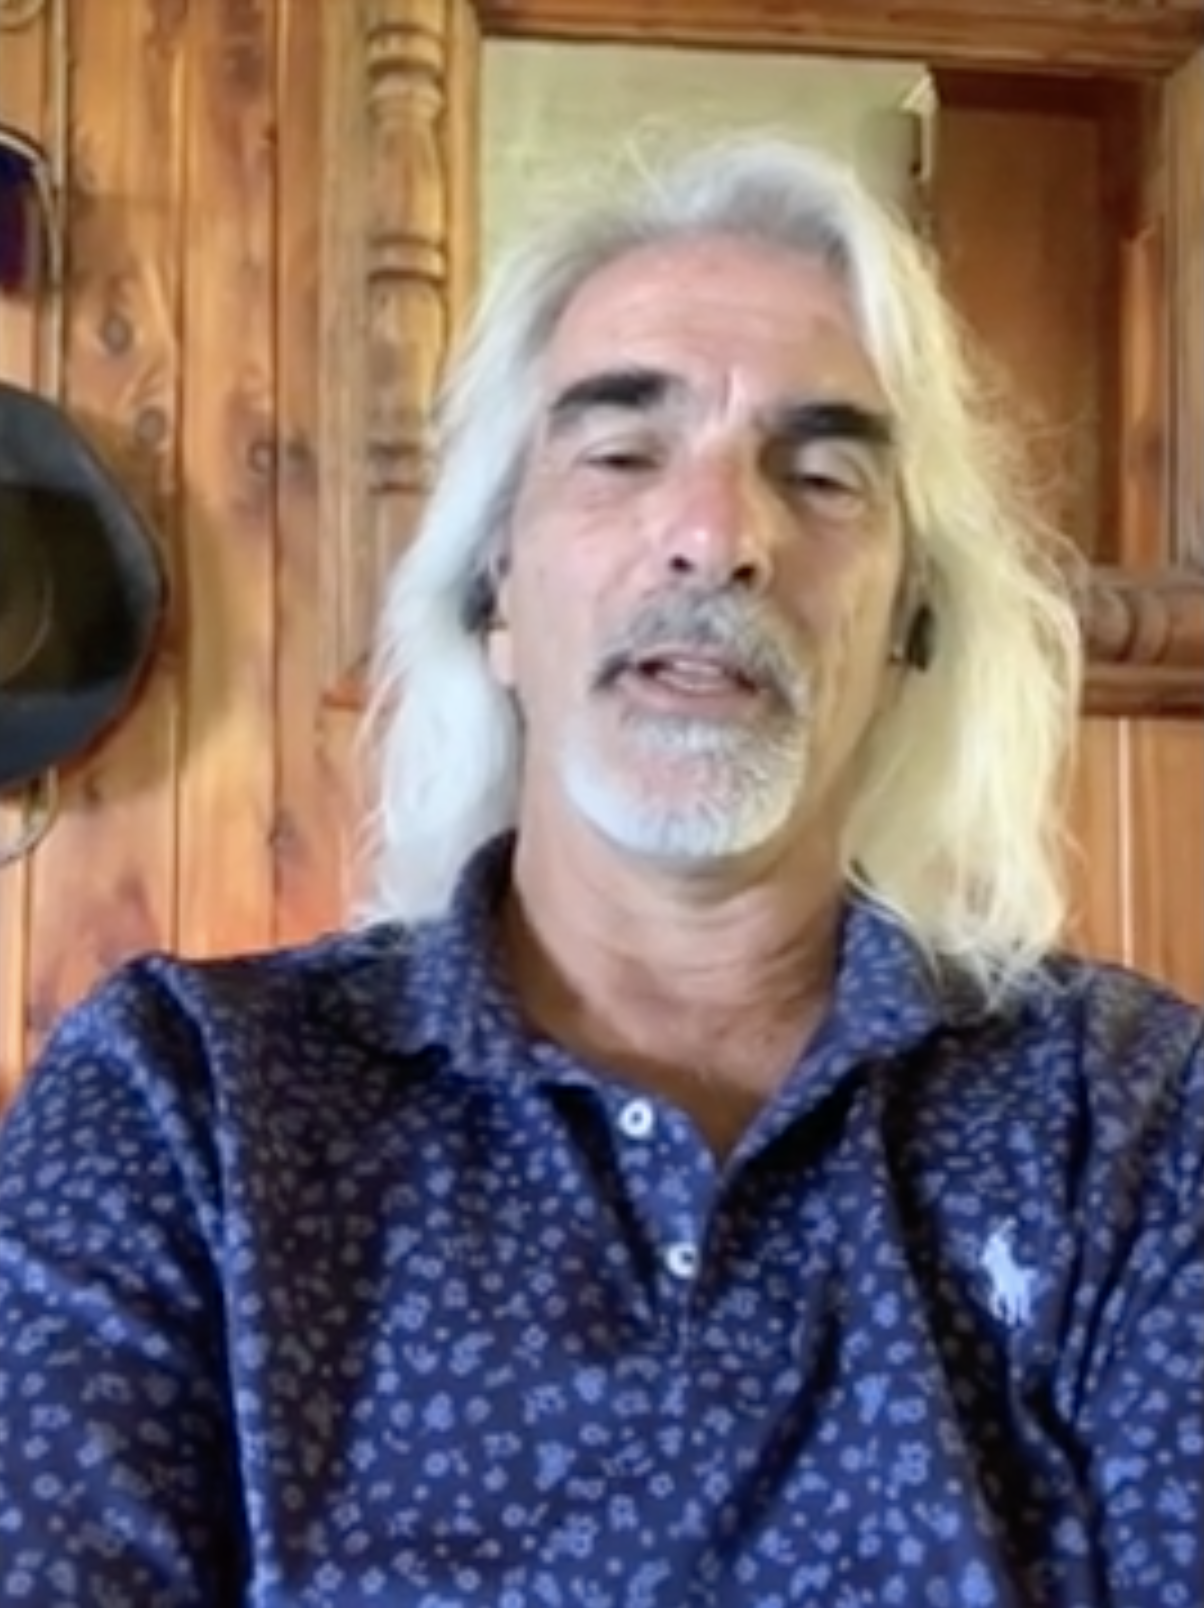 Guy Penrod encourages father's to lead the way